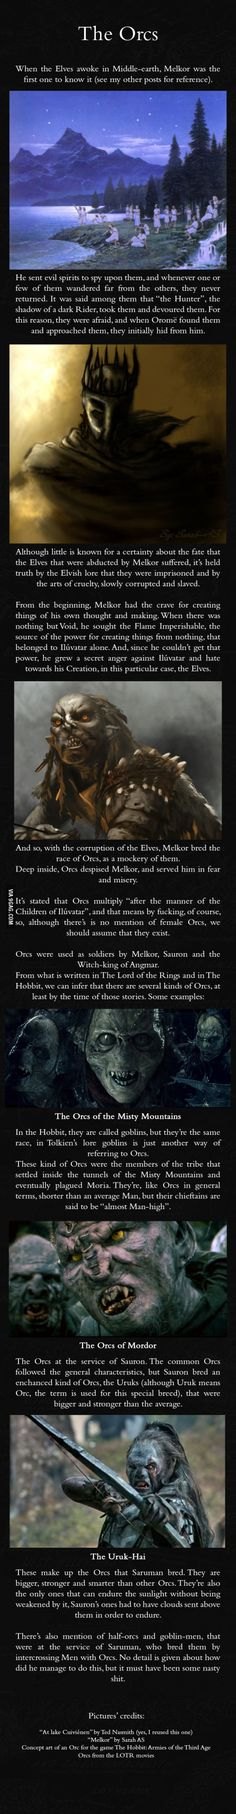 Orcs - J.R.R. Mythology